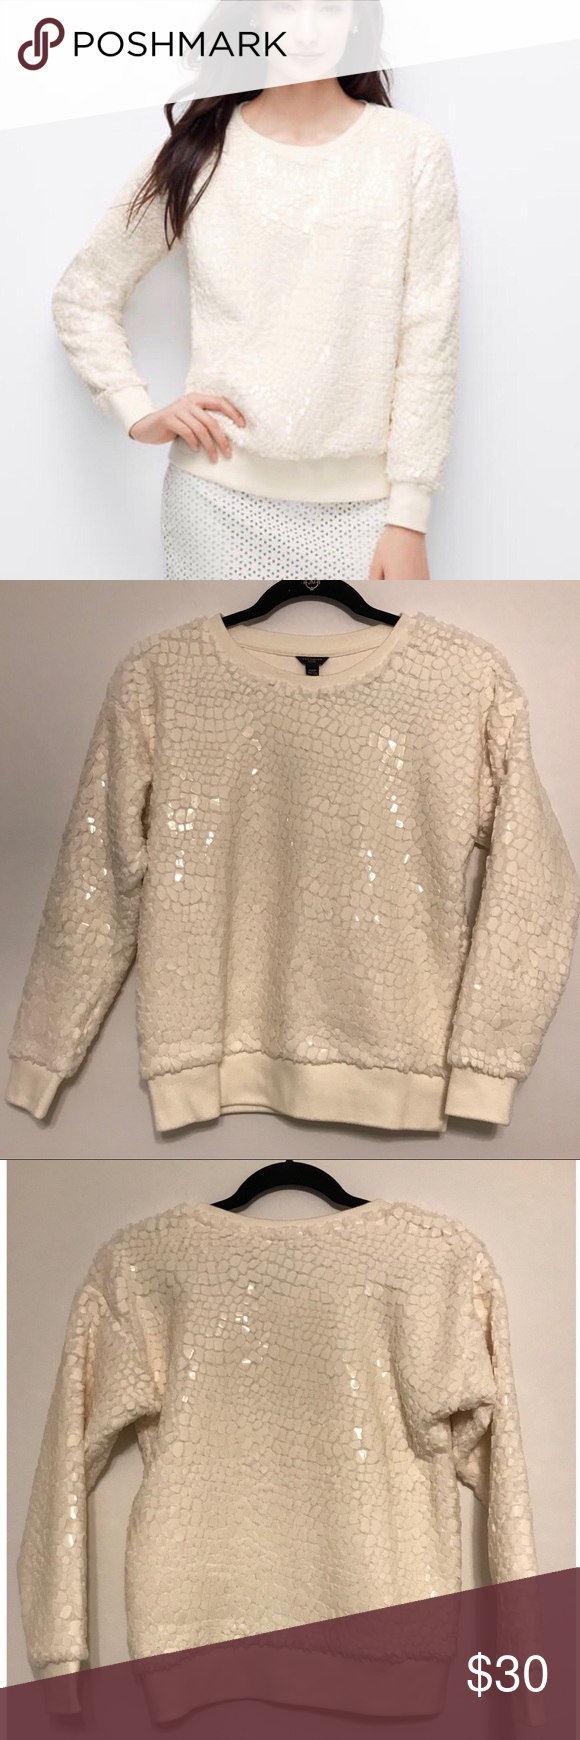 ad11a359b82 NWOT Ann Taylor Cracked Ice cream sweatshirt This is so beautiful and  feminine in person.